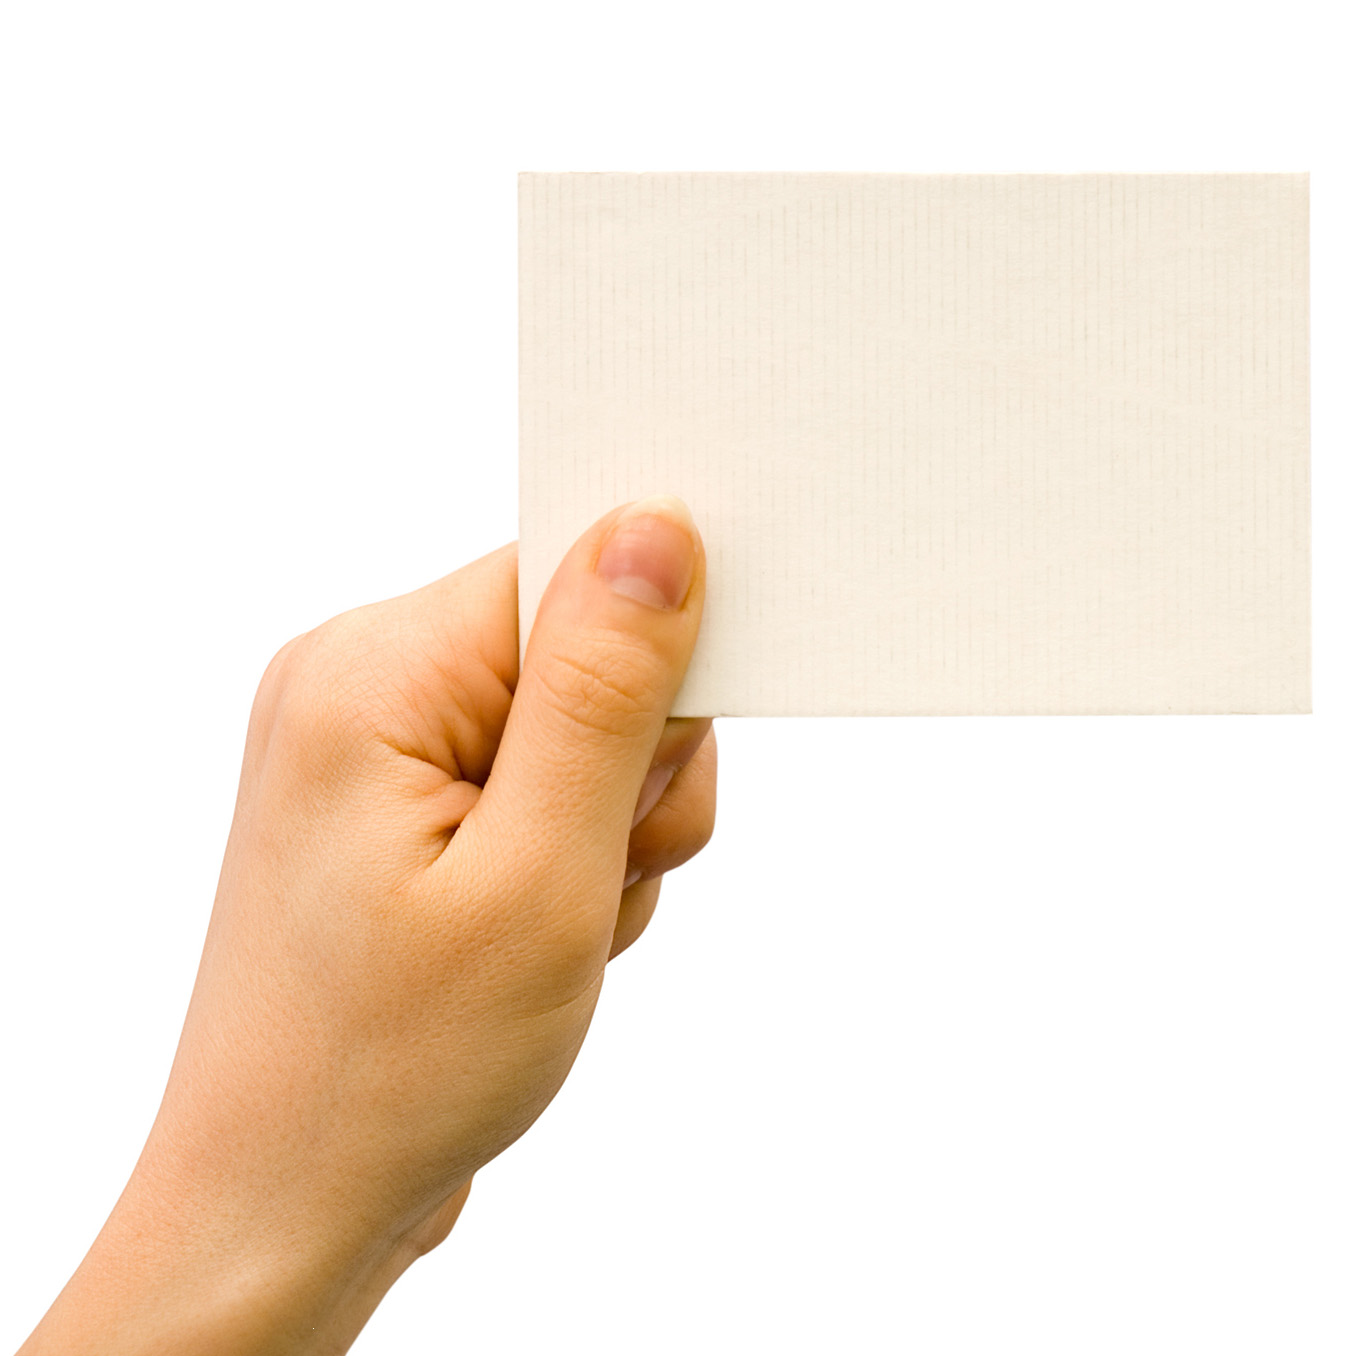 Holding blank card 26017